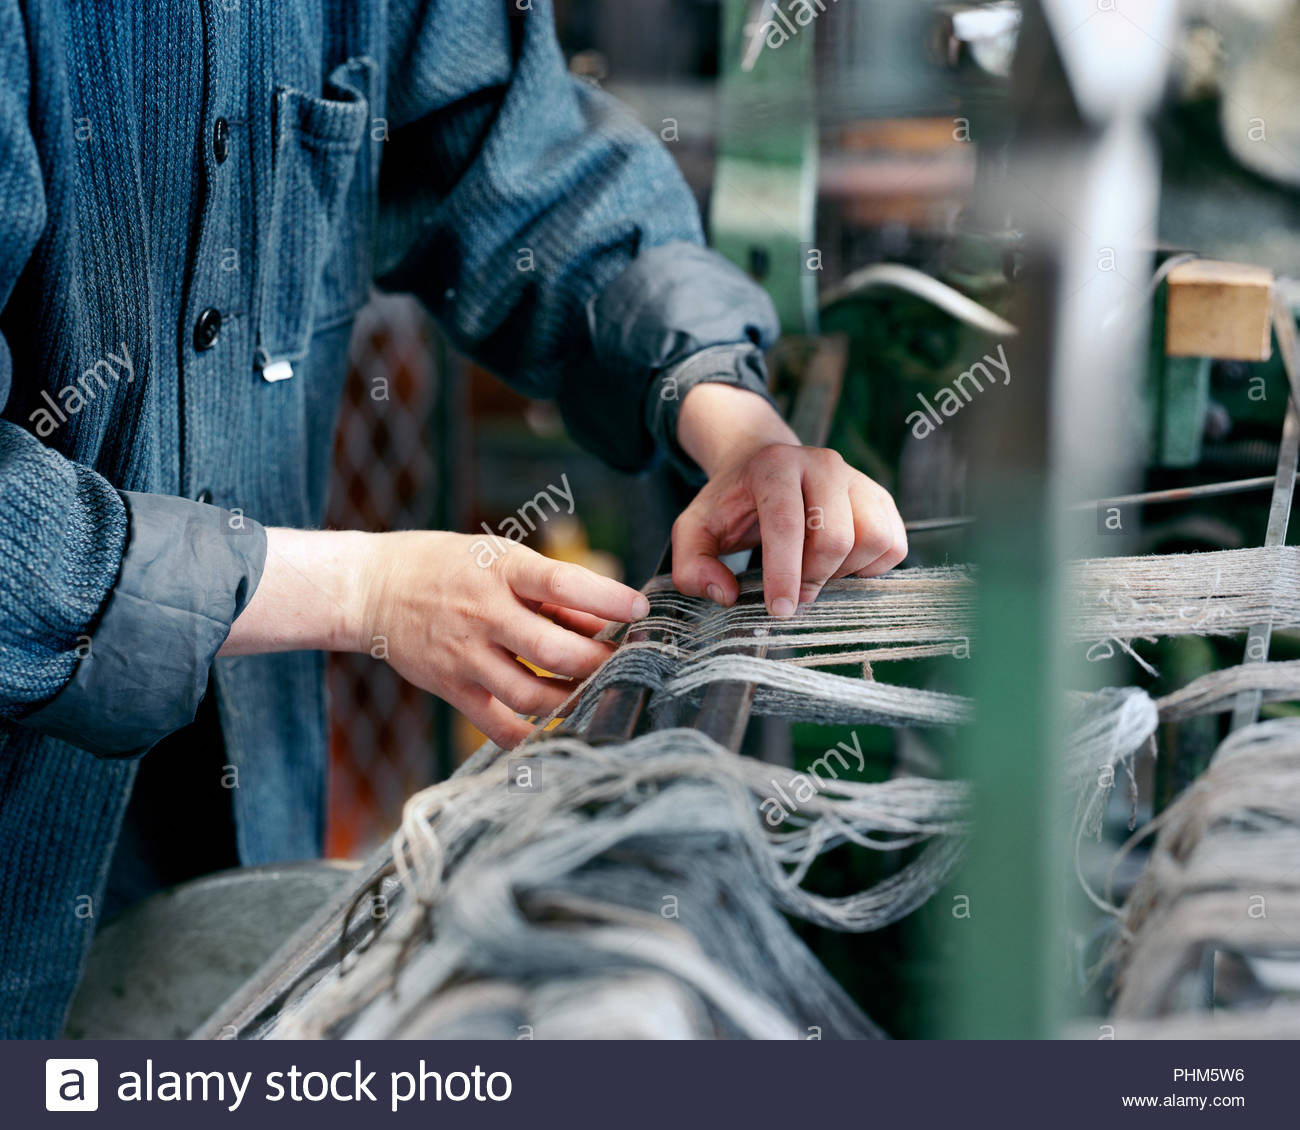 Woman using loom - Stock Image